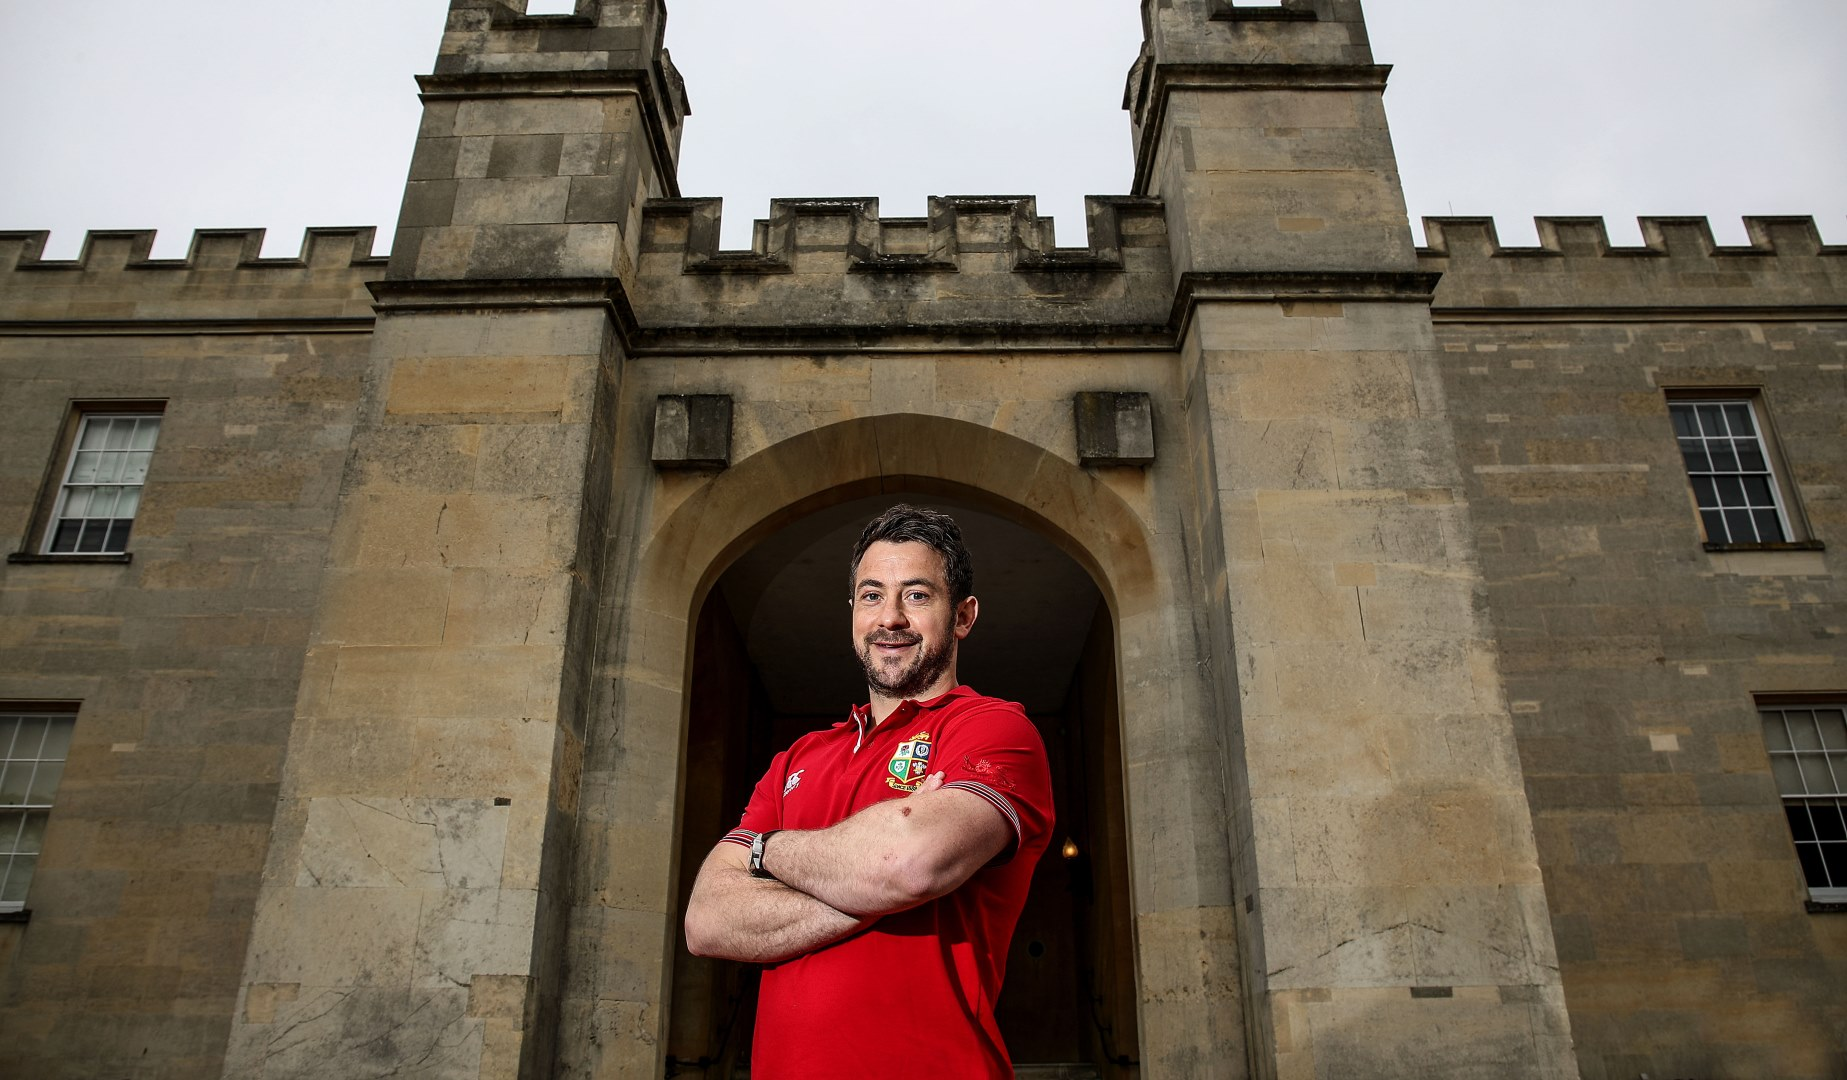 Mixed emotions for Laidlaw after Lions call-up